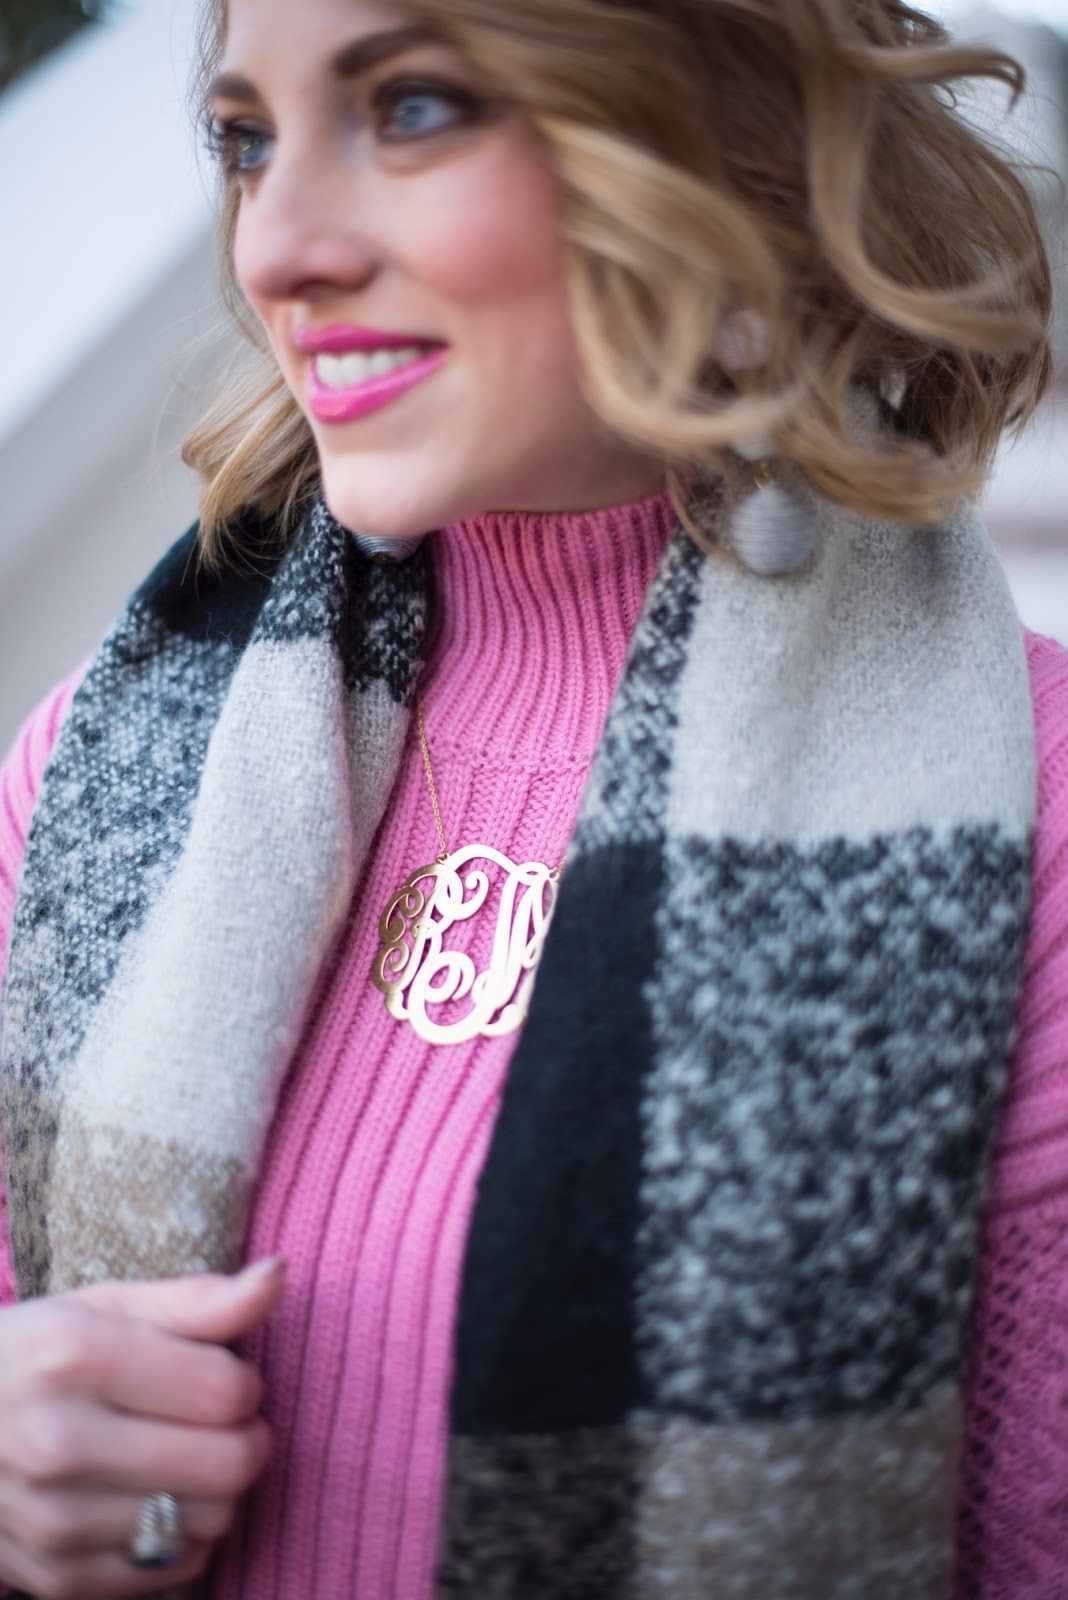 Monogram Necklace - Something Delightful Blog